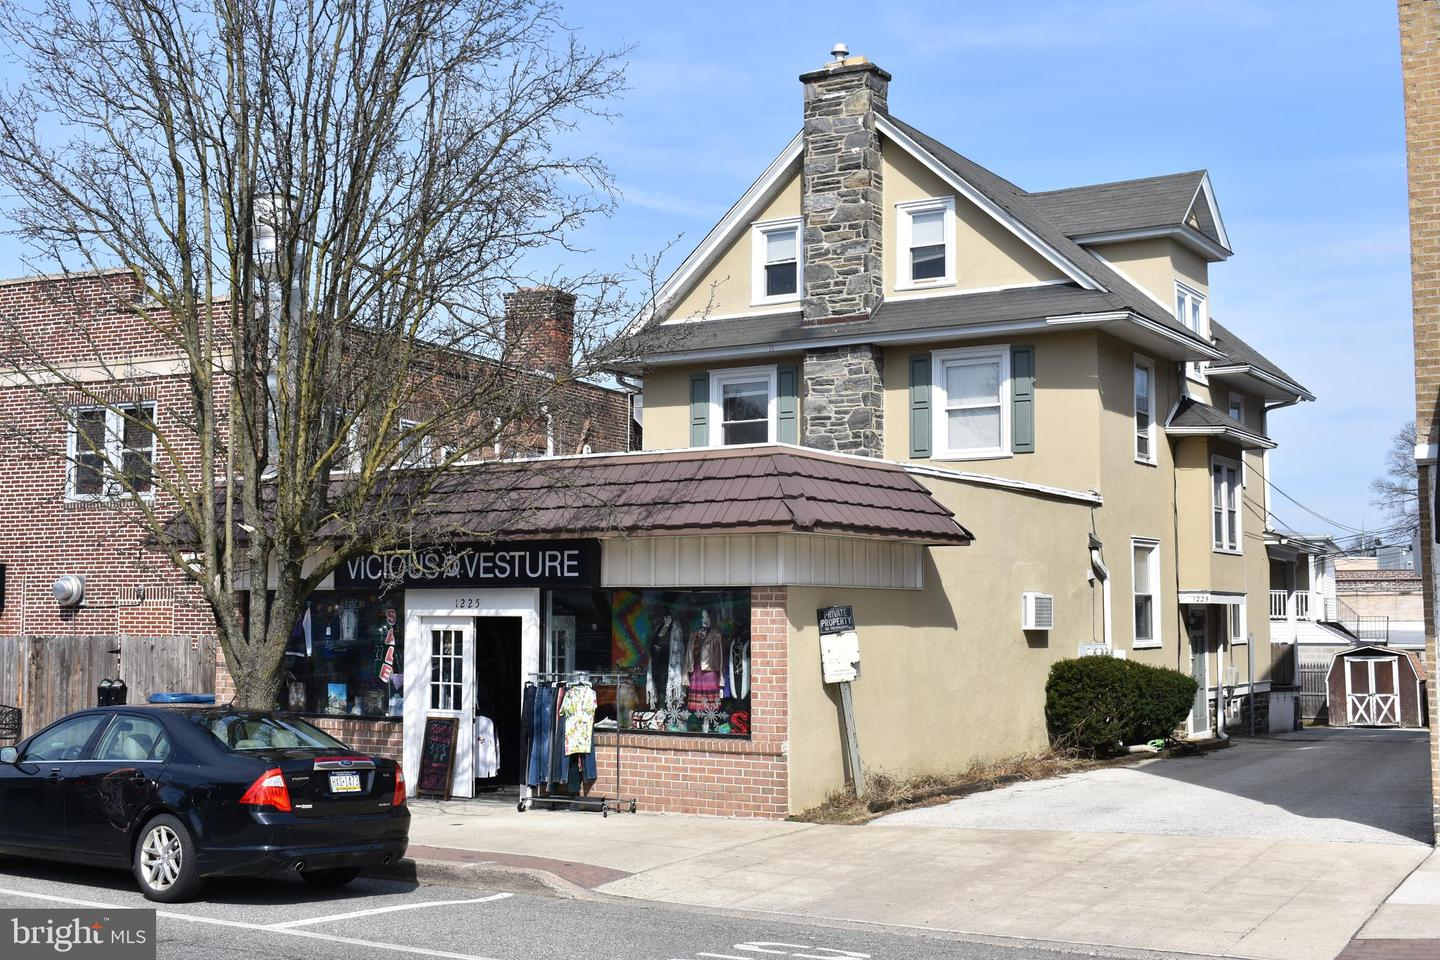 1225 E Darby Road Havertown, PA 19083